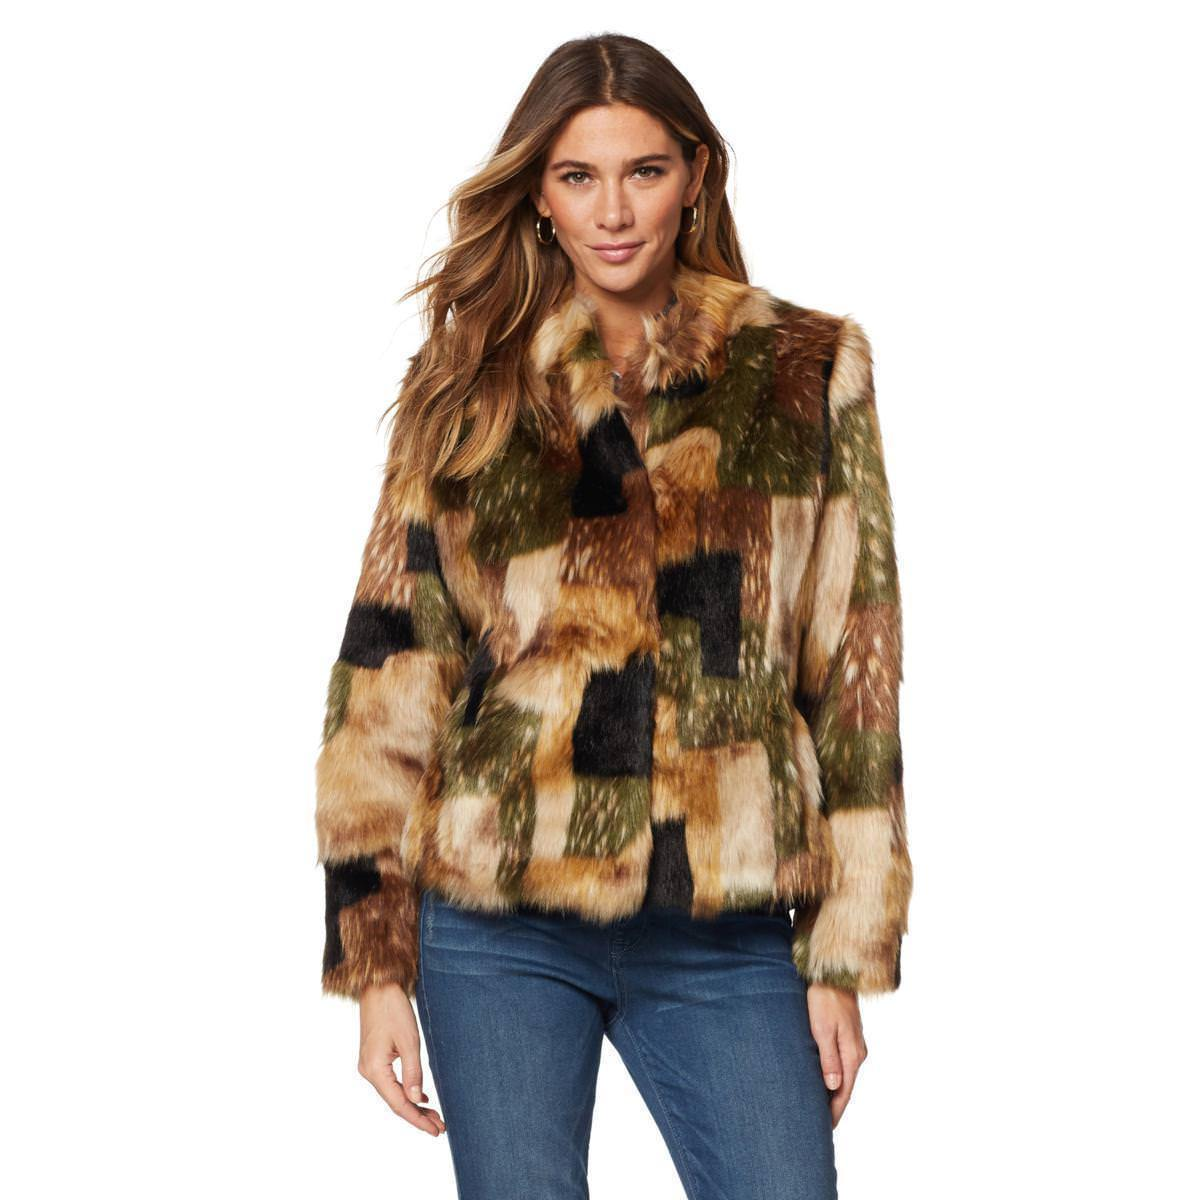 Fur Womens Adrianne Landau Chubby Faux Fur Womens Jacket Coat Camo Patchwork X Large